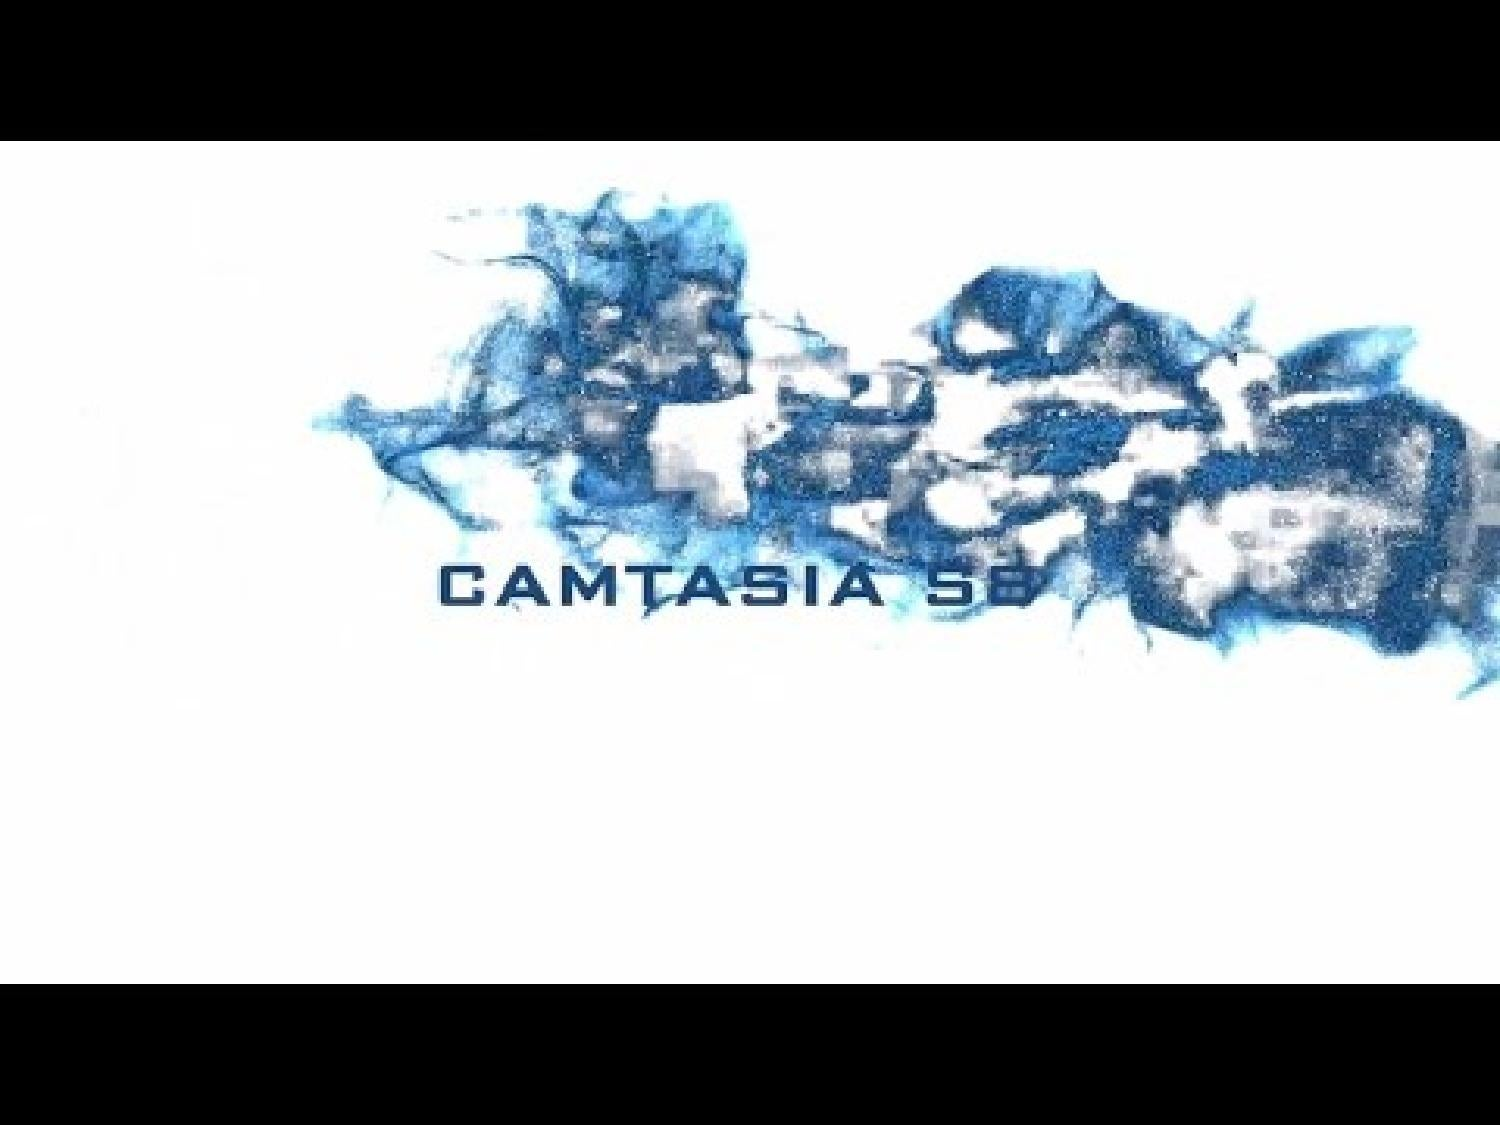 Free camtasia studio 8 intro video templates download blue free camtasia studio 8 intro video templates download blue camtasia studio 8 intro template by tips and tricks issuu pronofoot35fo Images